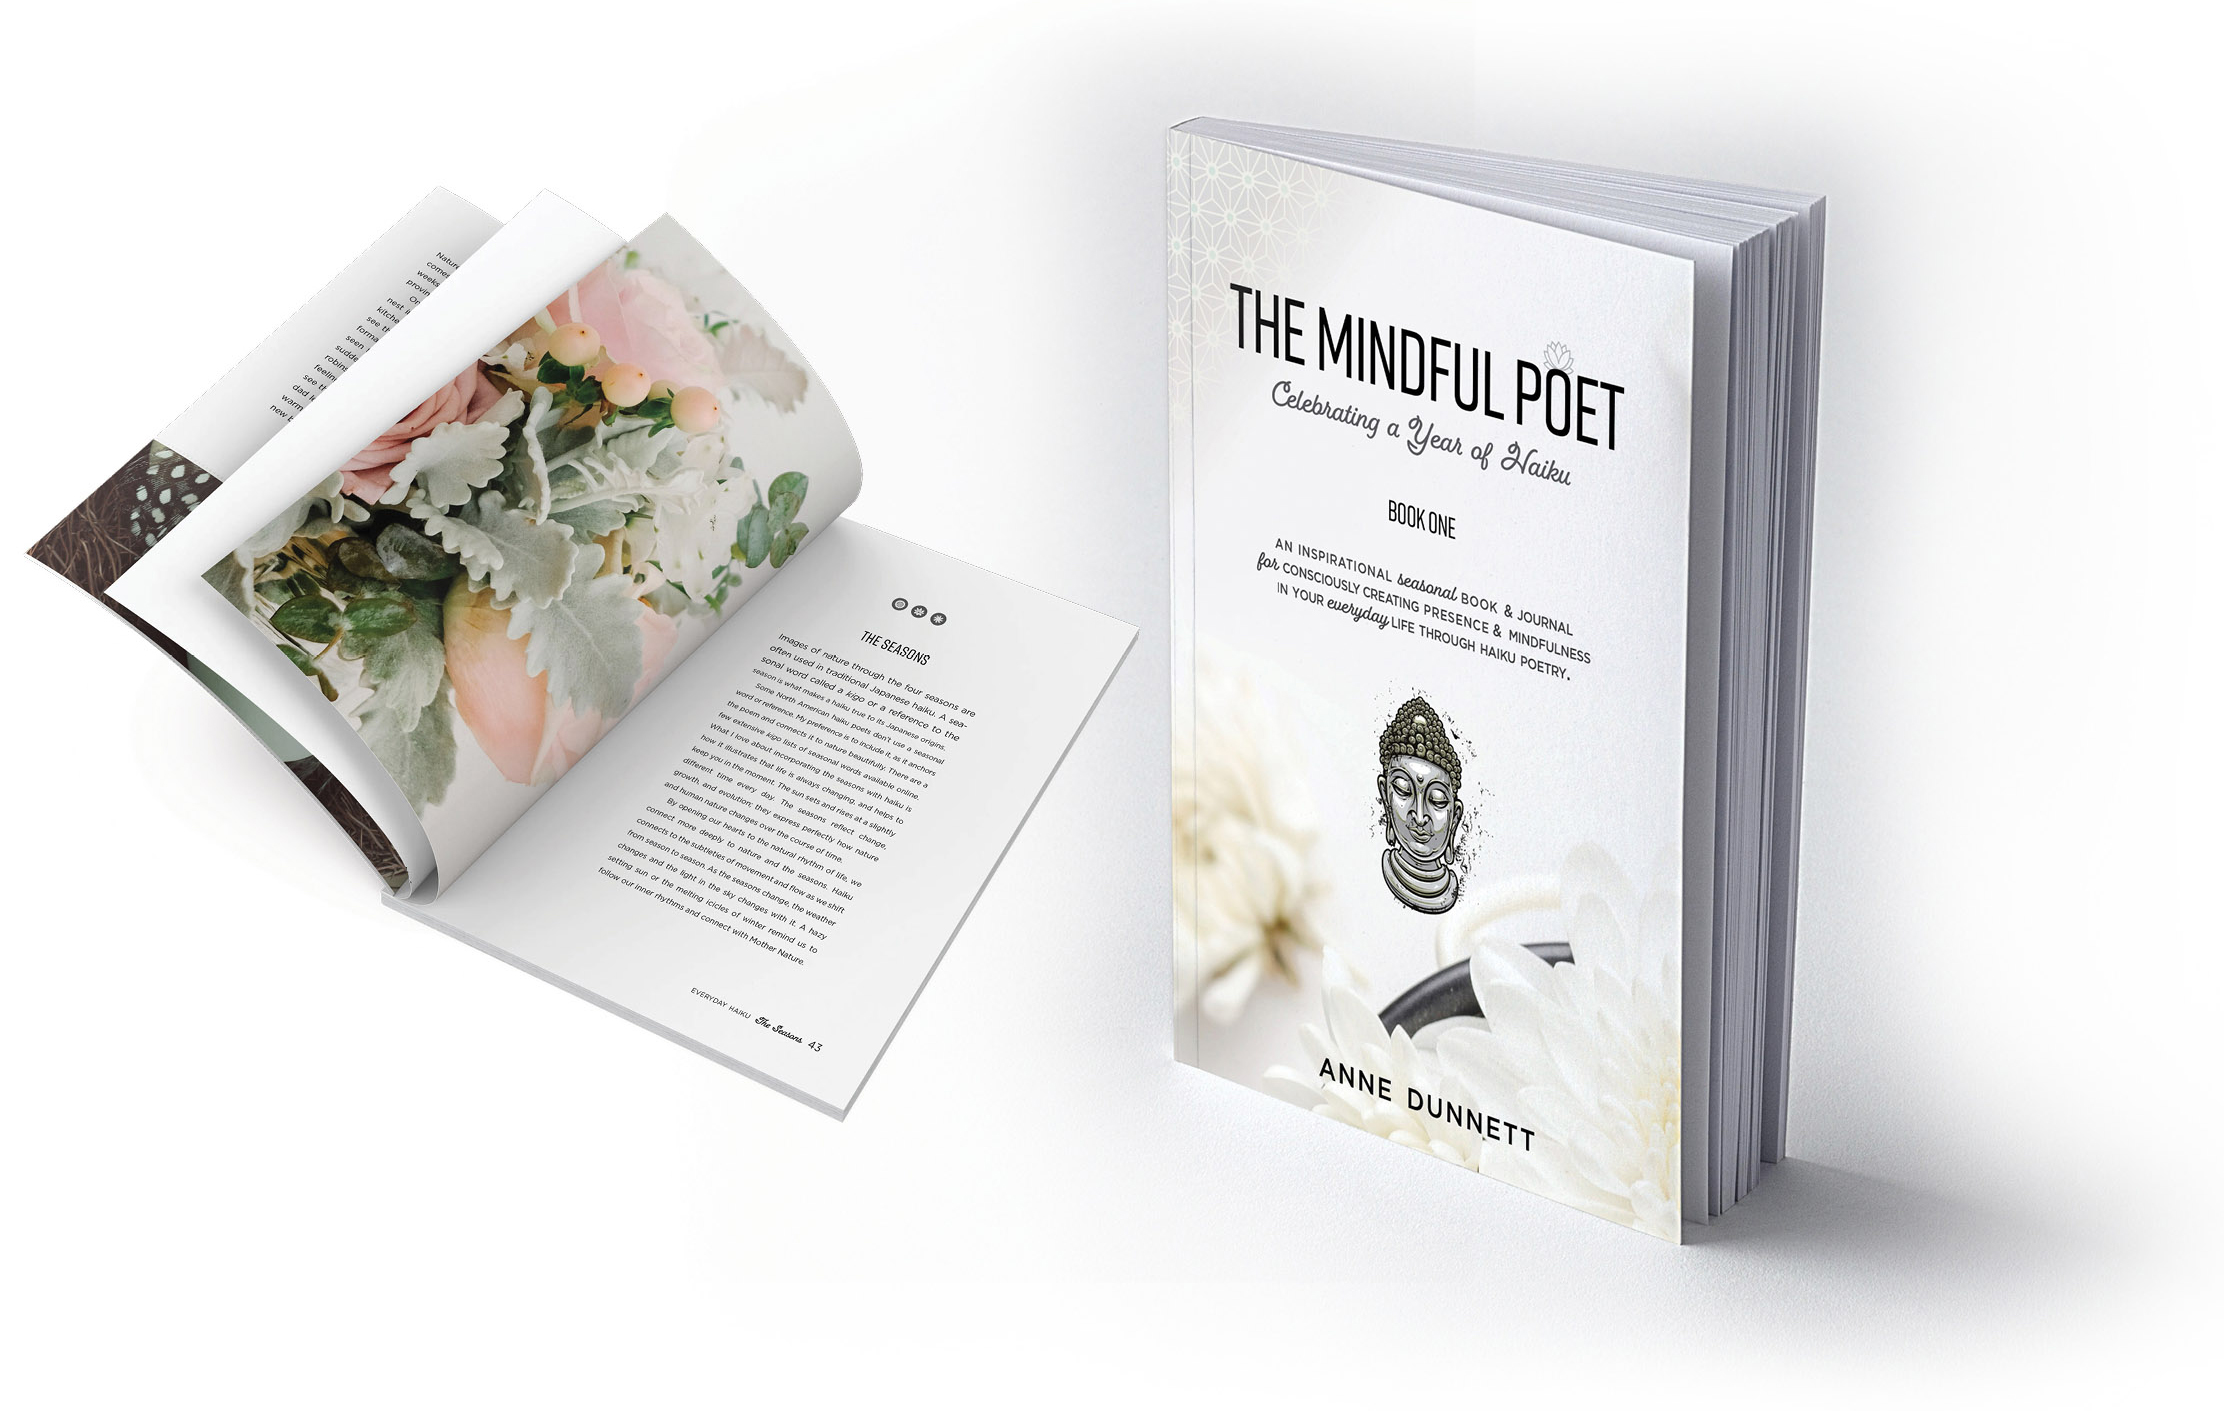 The Mindful Poet Book cover